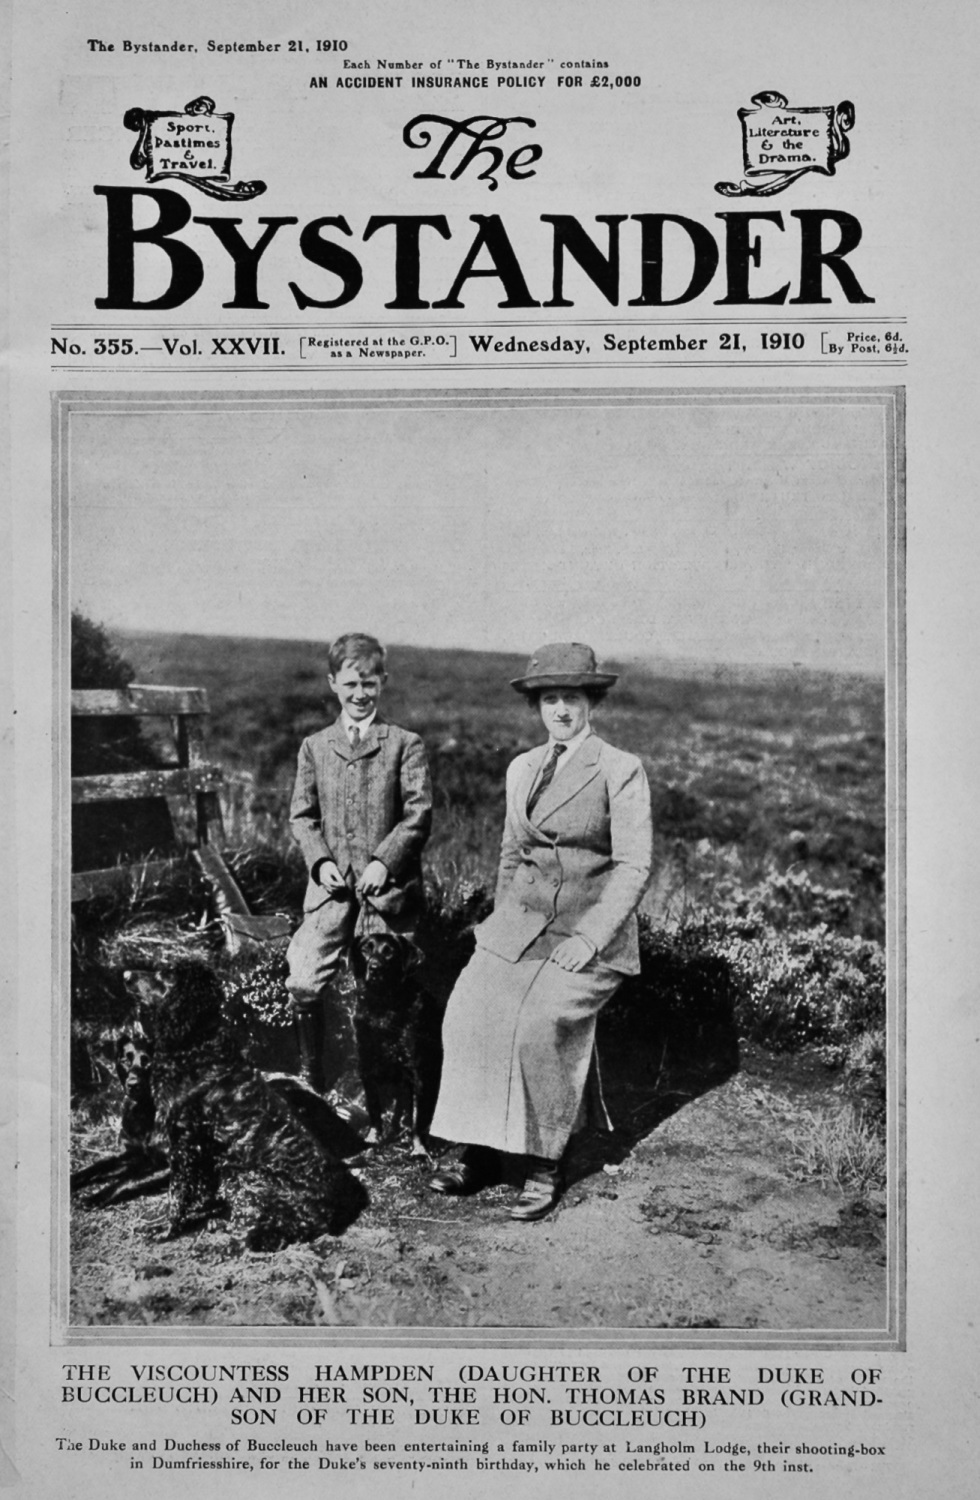 The Bystander Sept 21st 1910.